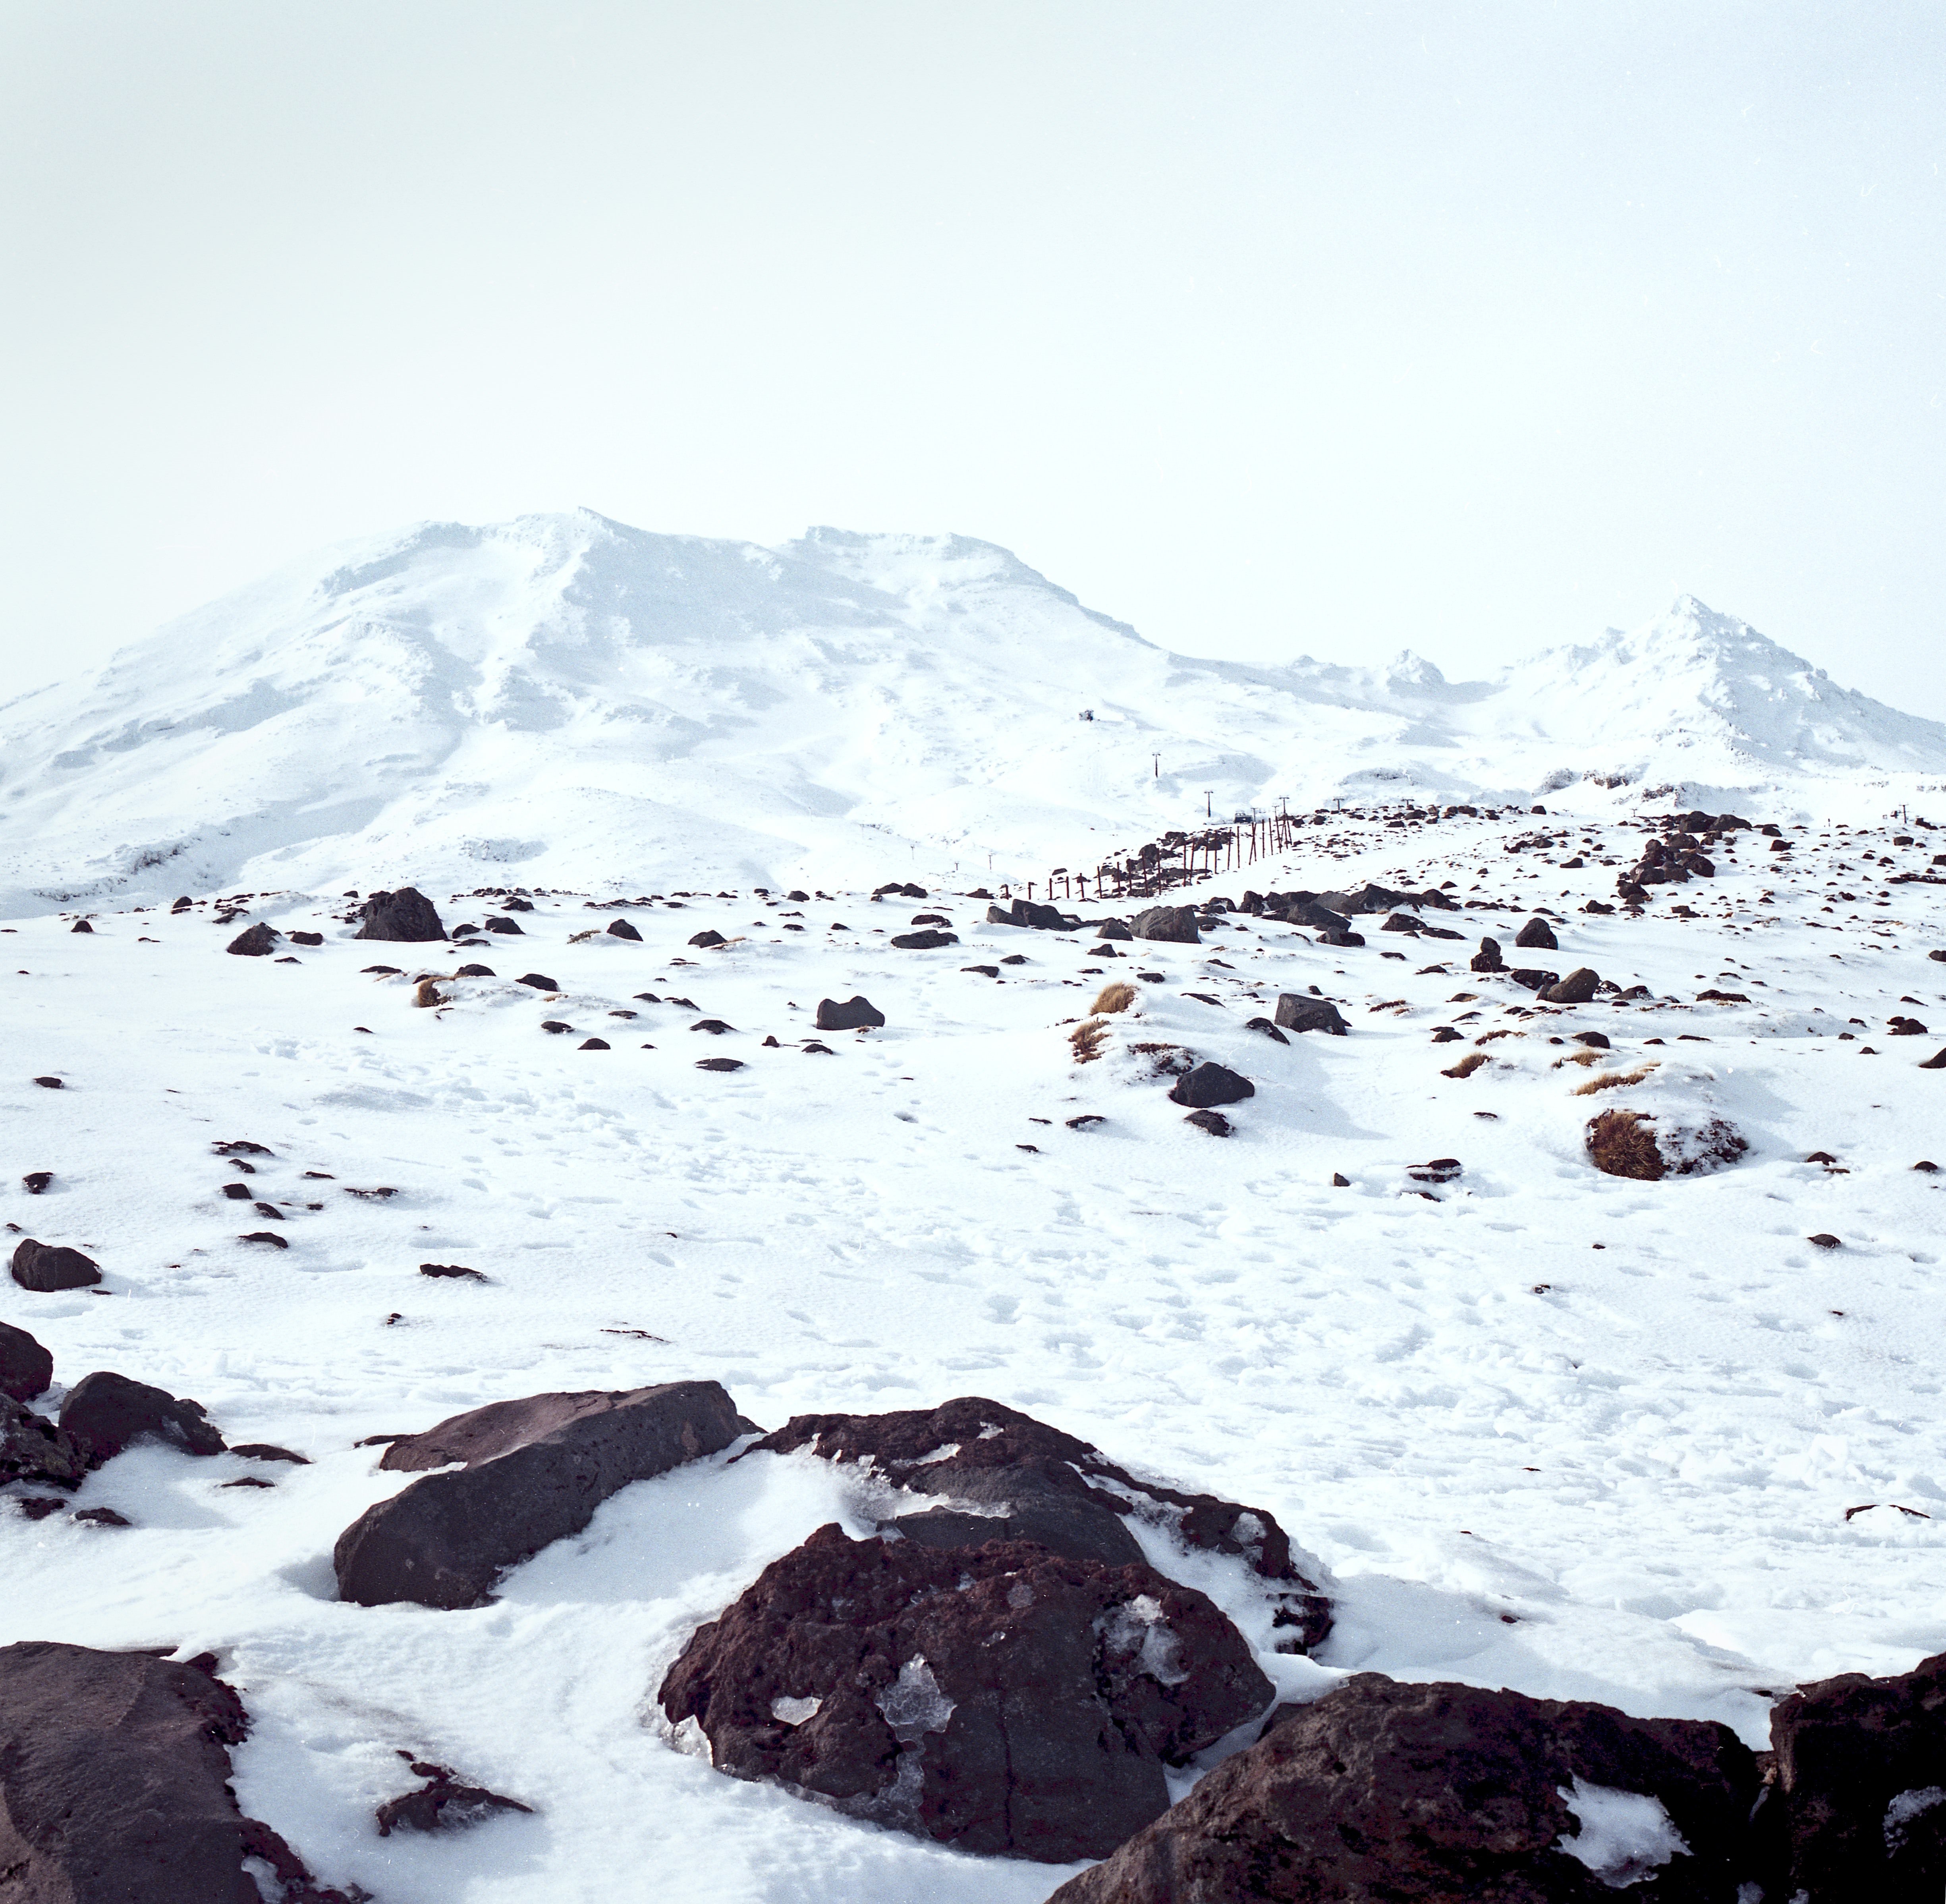 A look up at a peak on a dark brown mountain covered in snow.